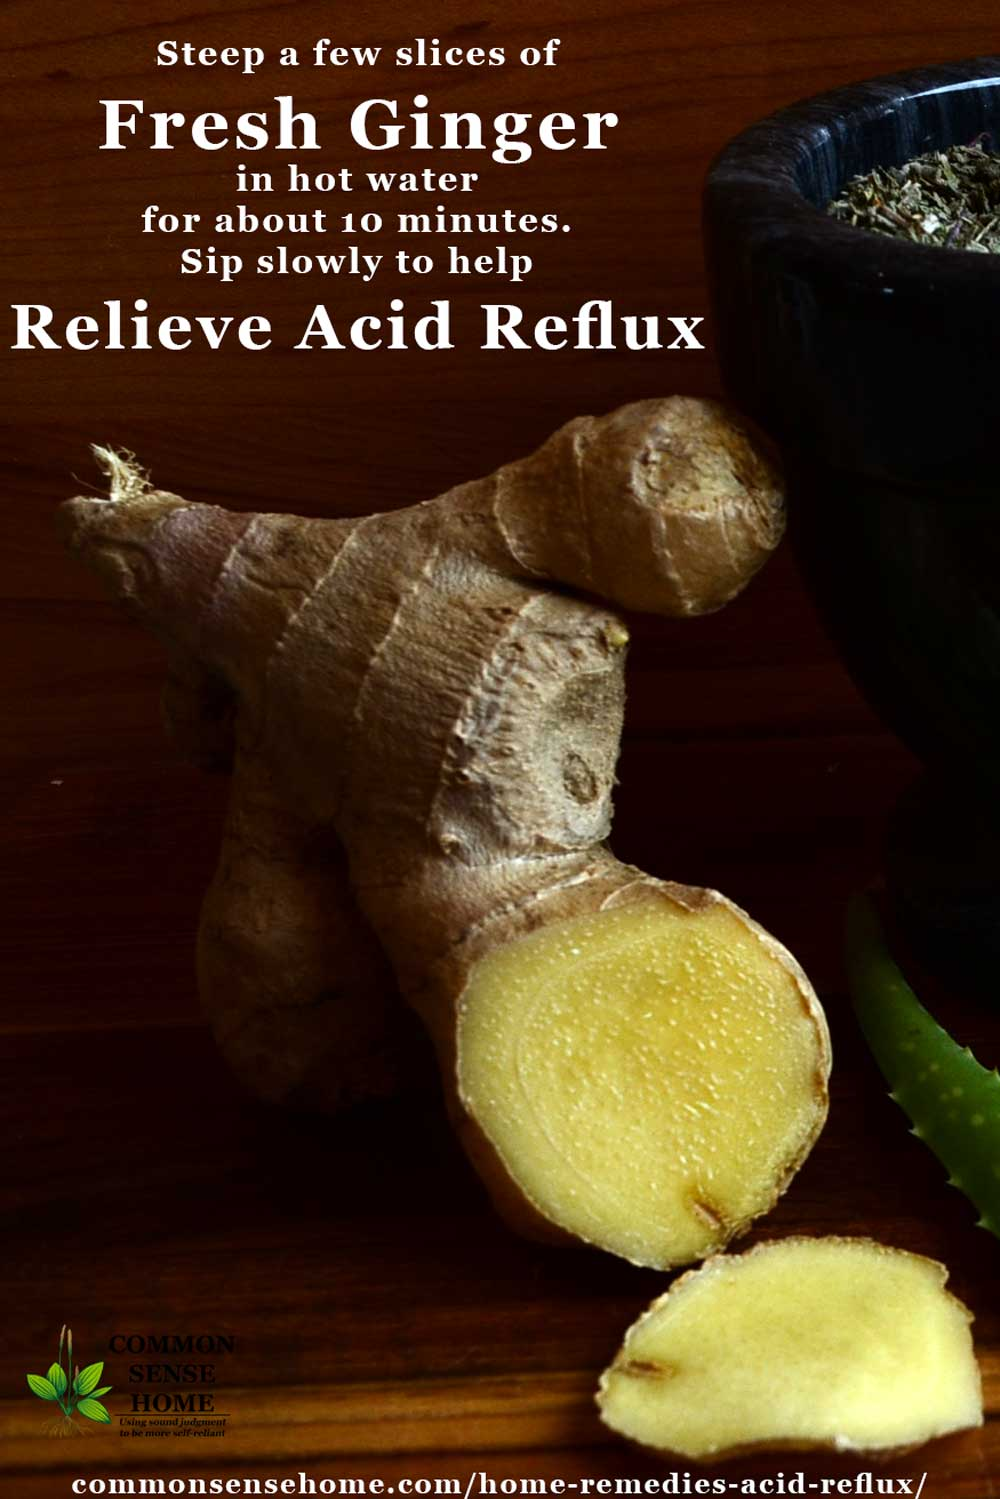 Ginger relieves acid reflux